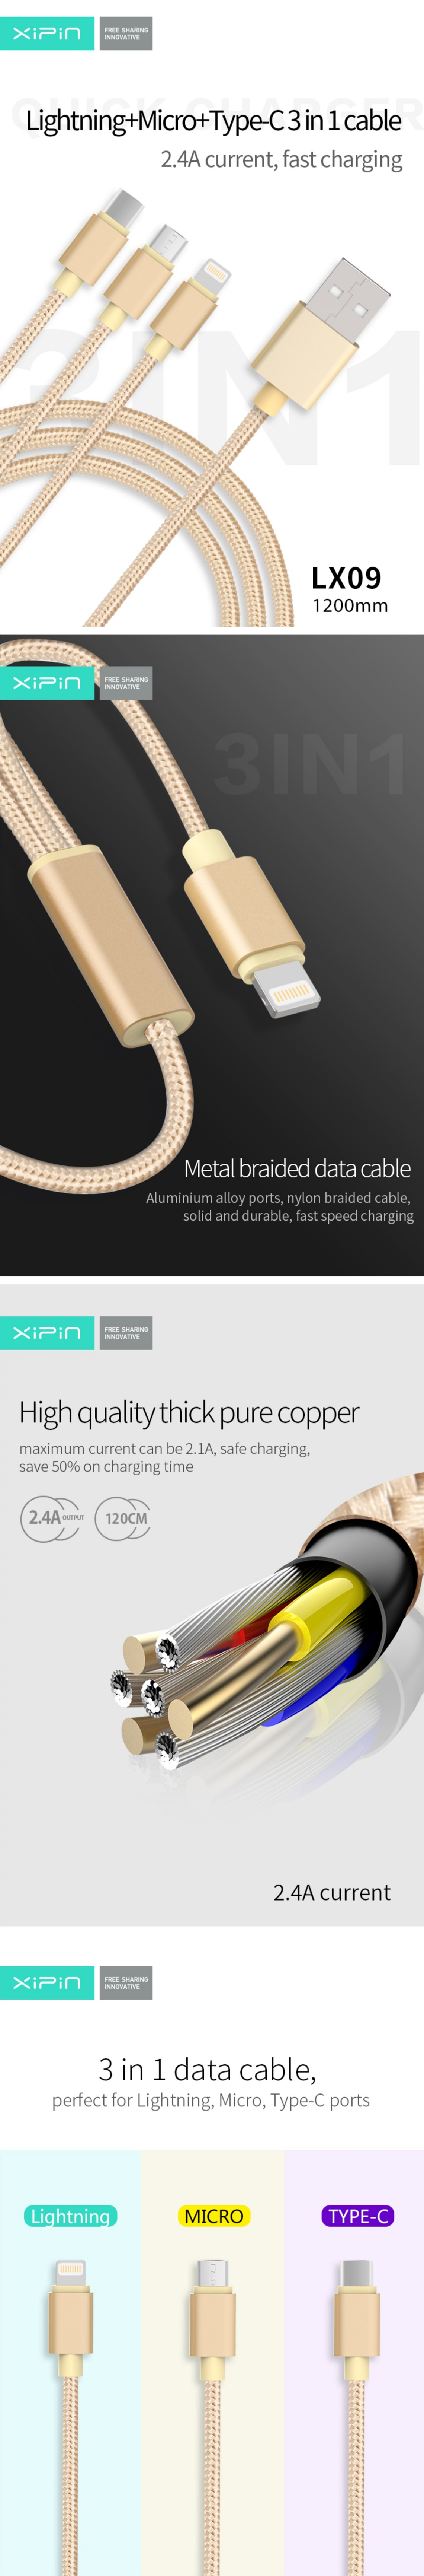 XiPin 1.2m USB to Micro USB, Lightning & USB-C 3 In 1 Cable 2.4A Nylon Braided Gold LX09